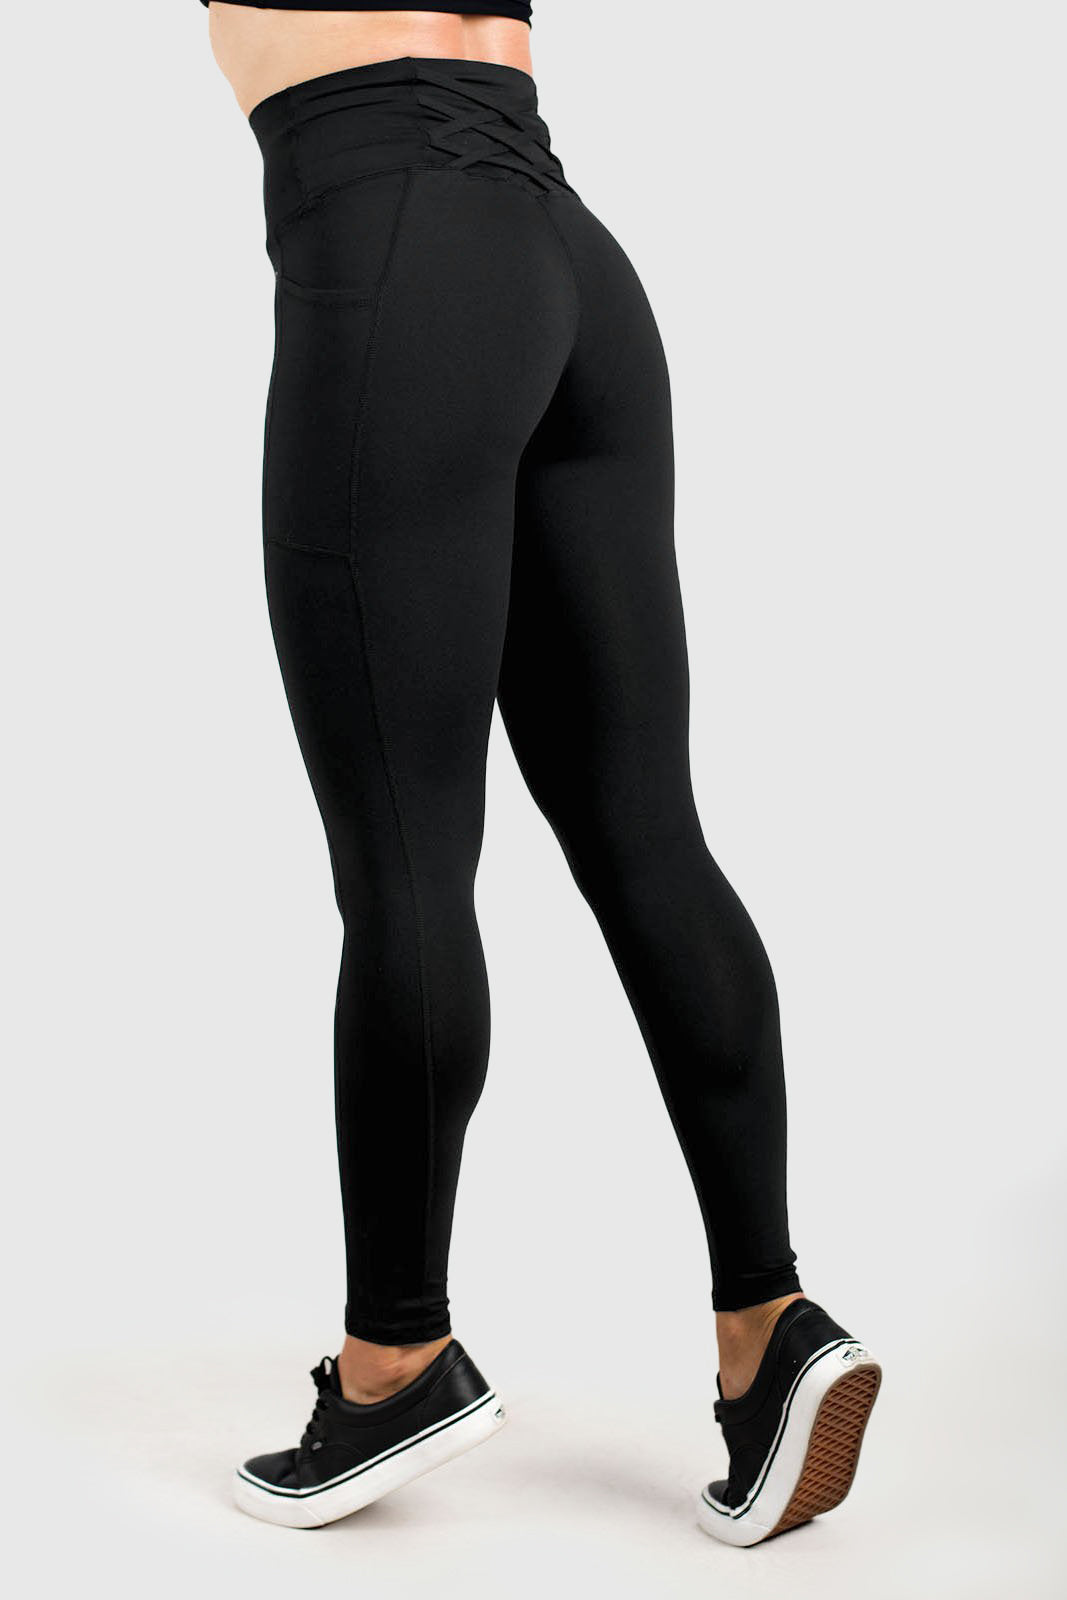 f345c715f5dff Strappy Highwaisted Leggings - Black – Twotags